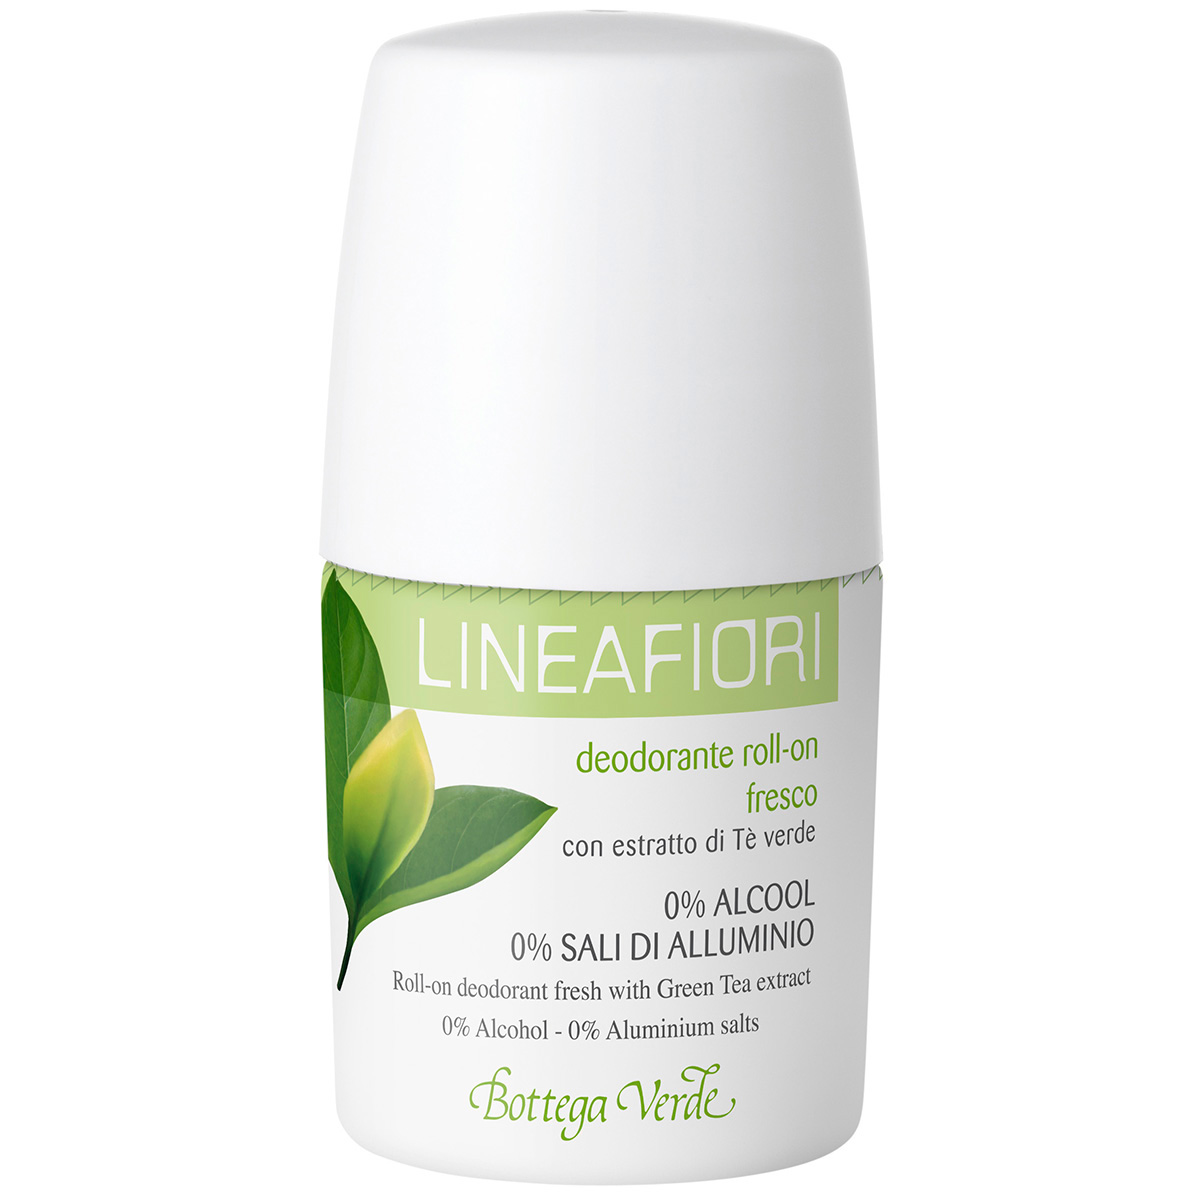 Linea Fiori - Deodorant roll-on cu extract de ceai verde - fresh